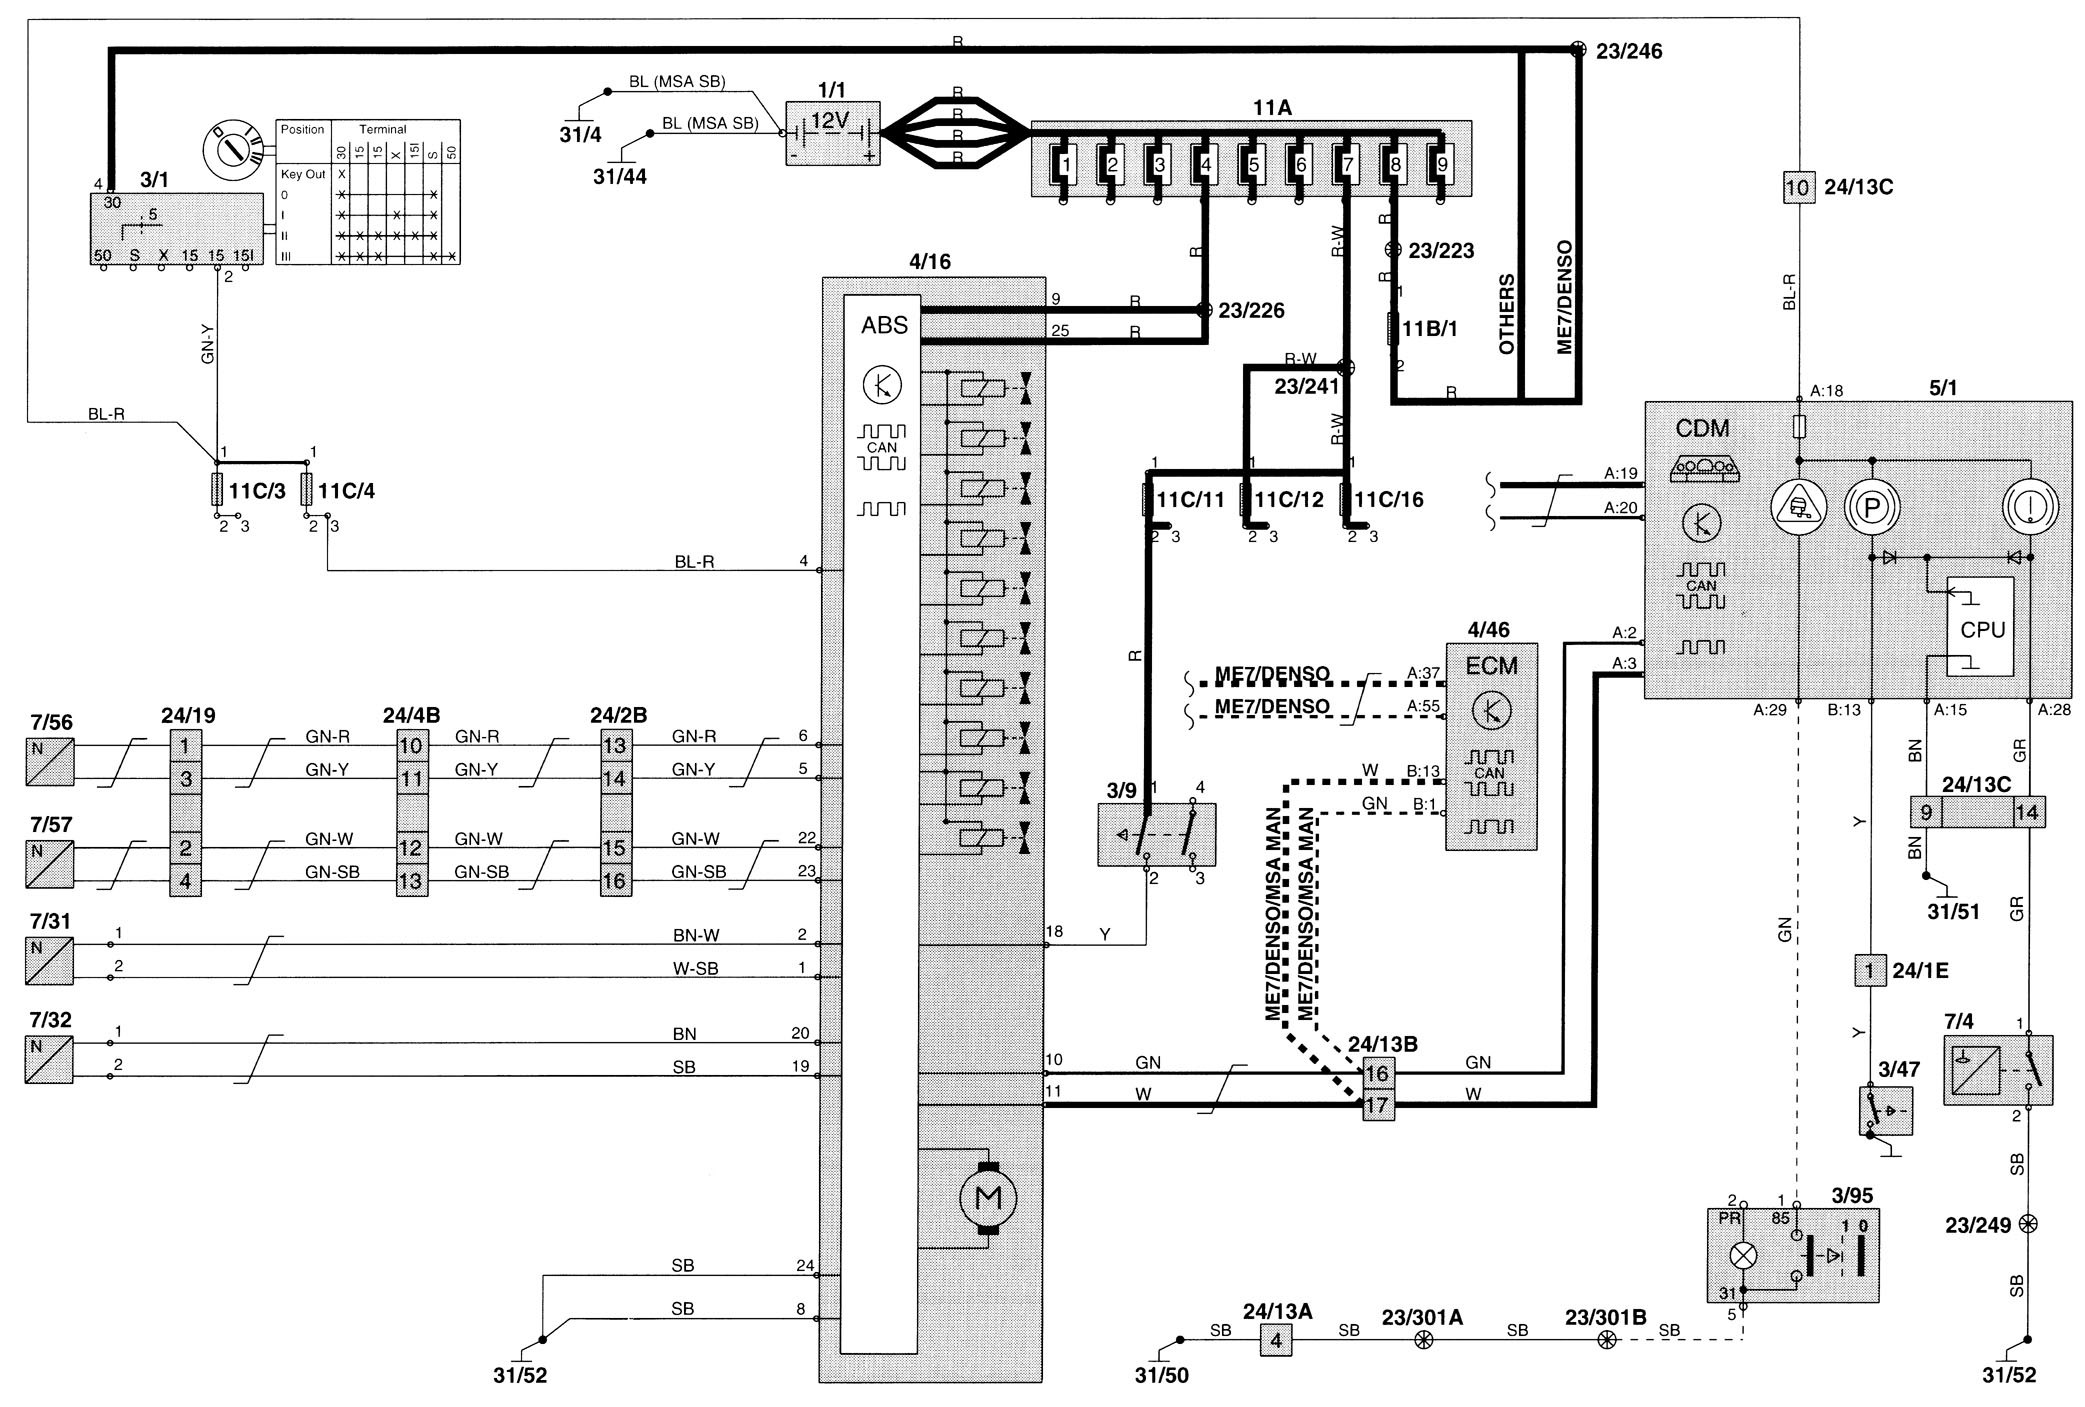 volvo c70 wiring diagram brake control 1999 volvo c70 (1999) wiring diagrams brake control carknowledge c70 wiring diagram at alyssarenee.co